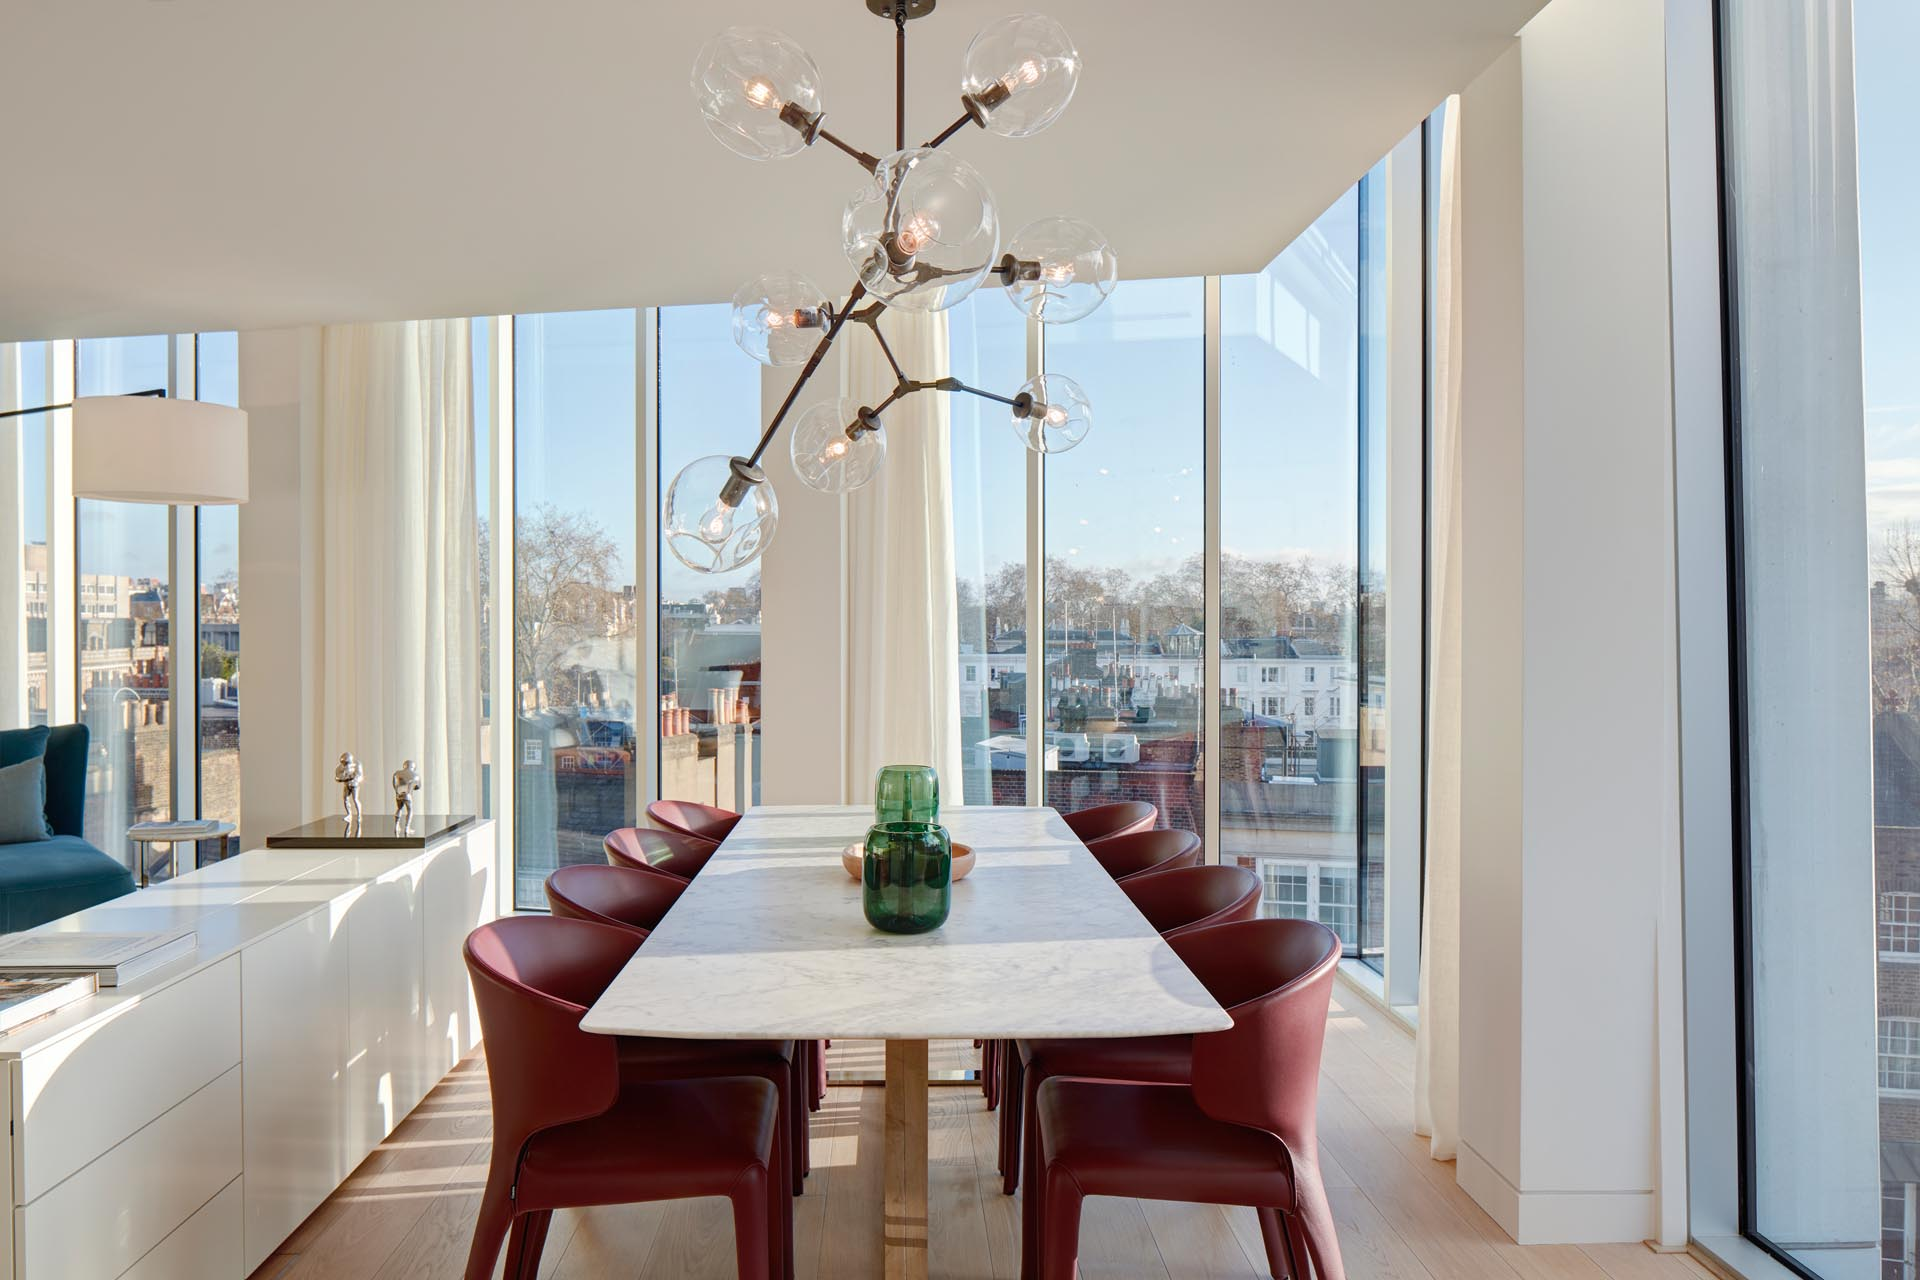 A modern open plan dining area with floor-to-ceiling windows.